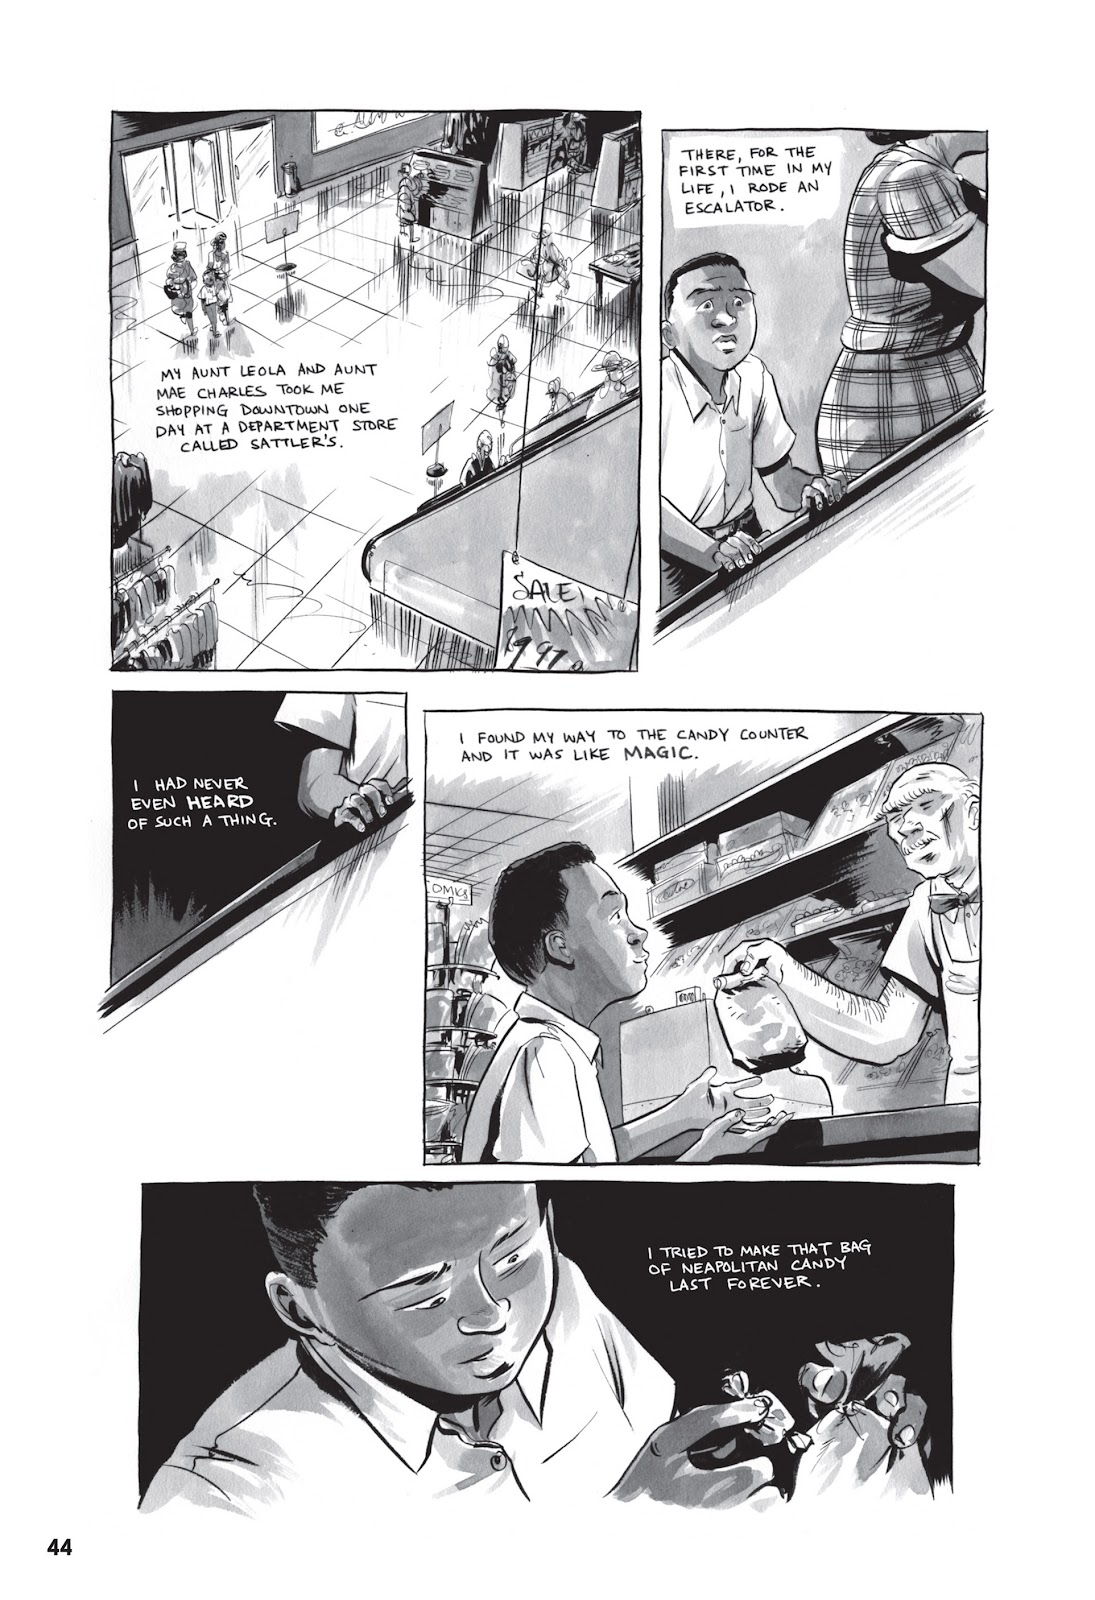 March 1 Page 41